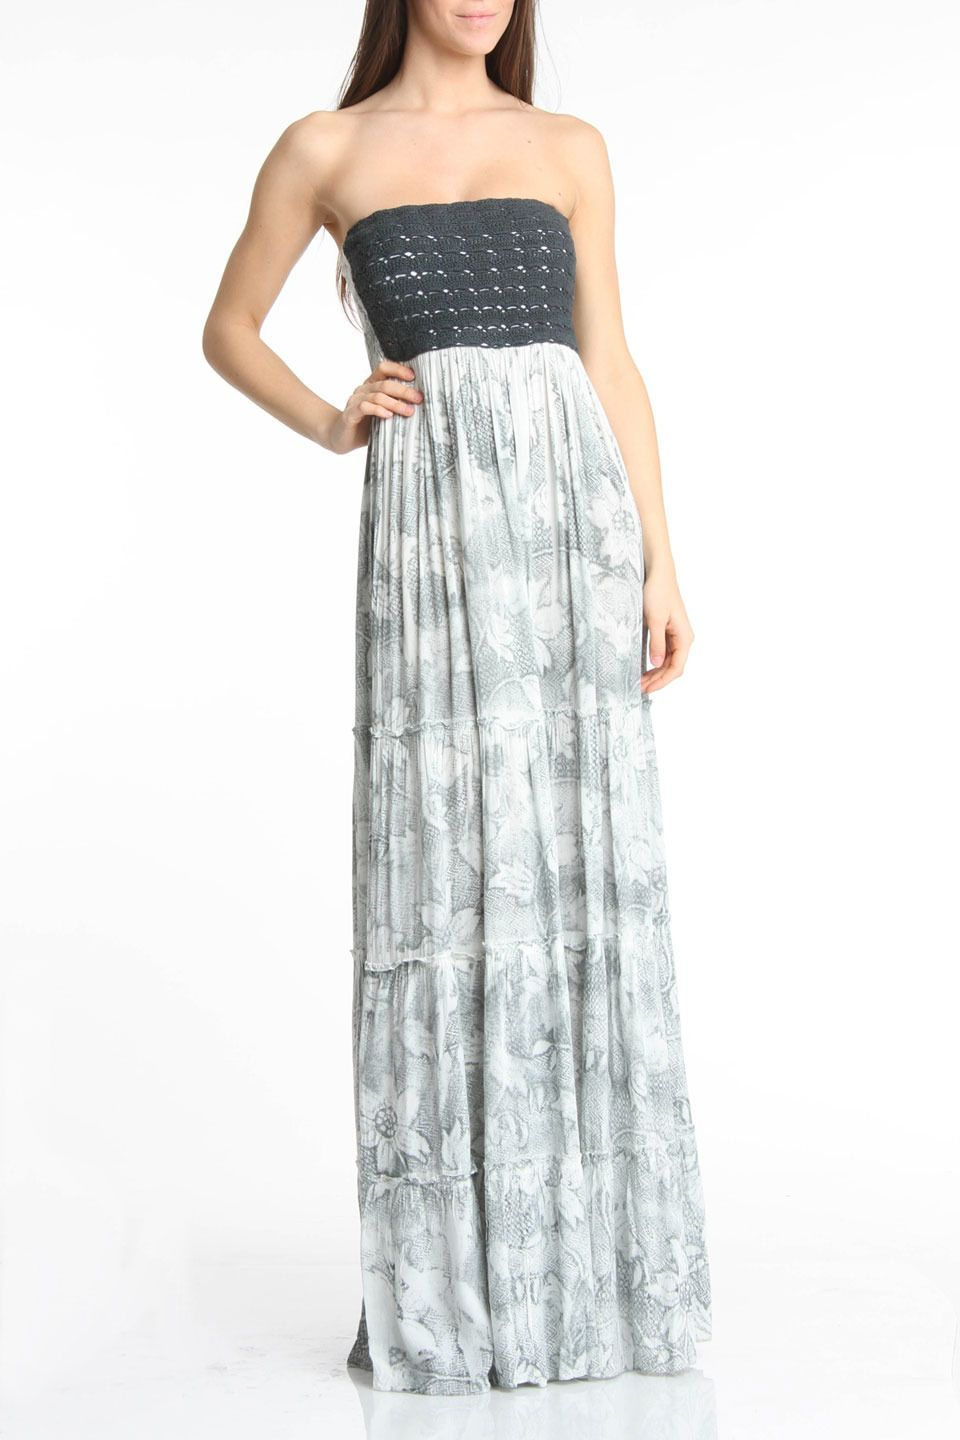 Chaudry Strapless Maxi Dress in Shadow - I love love love this dress!!  Musique De La ModeRobes ... 661c493343a8